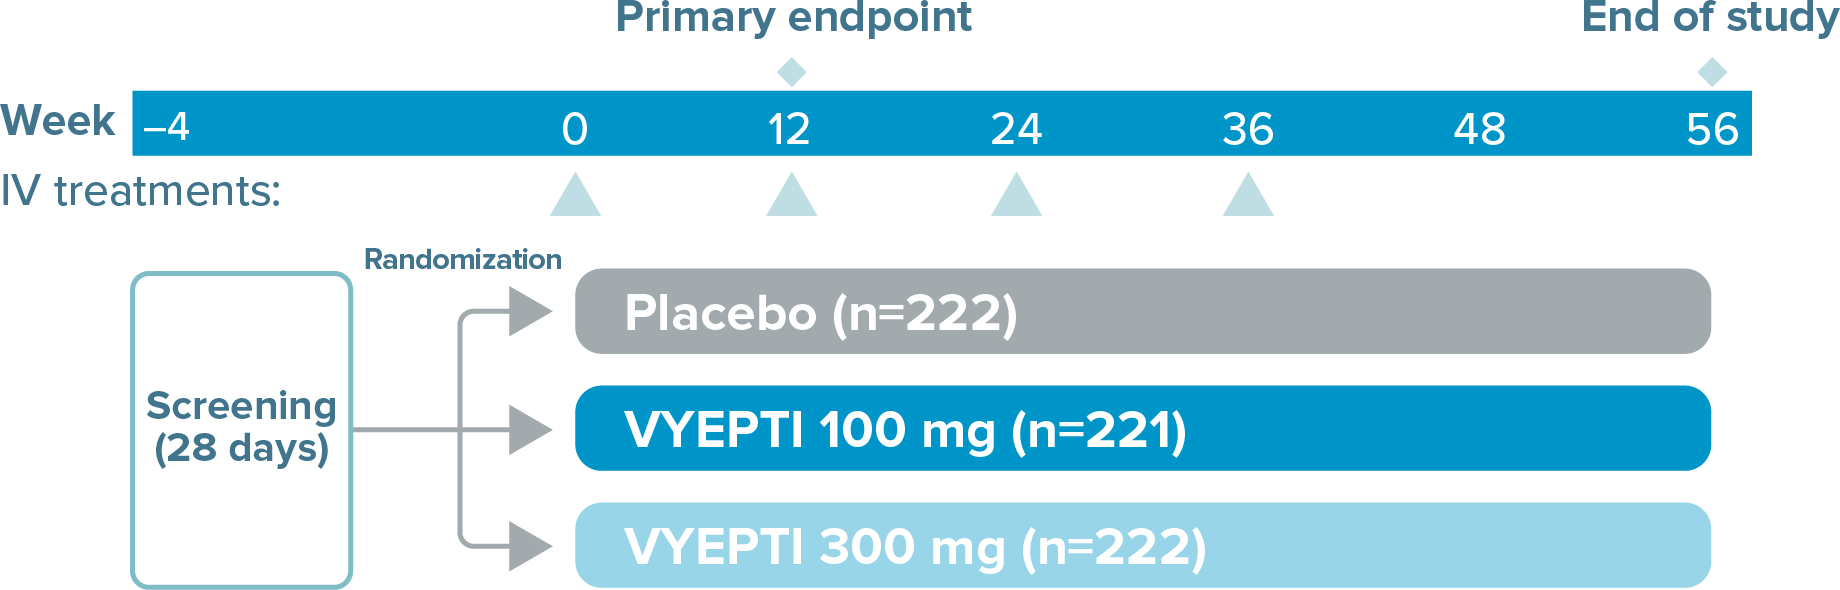 PROMISE-1 trial design graphic showing screening for 28 days beginning at Week –4 and randomization into placebo (n=222), VYEPTI 100 mg (n=221), and VYEPTI 300 mg (n=222). IV treatments occurred at Week 0, Week 12, Week 24, and Week 36. The primary endpoint was measured at Week 12, and the study ended at Week 56.